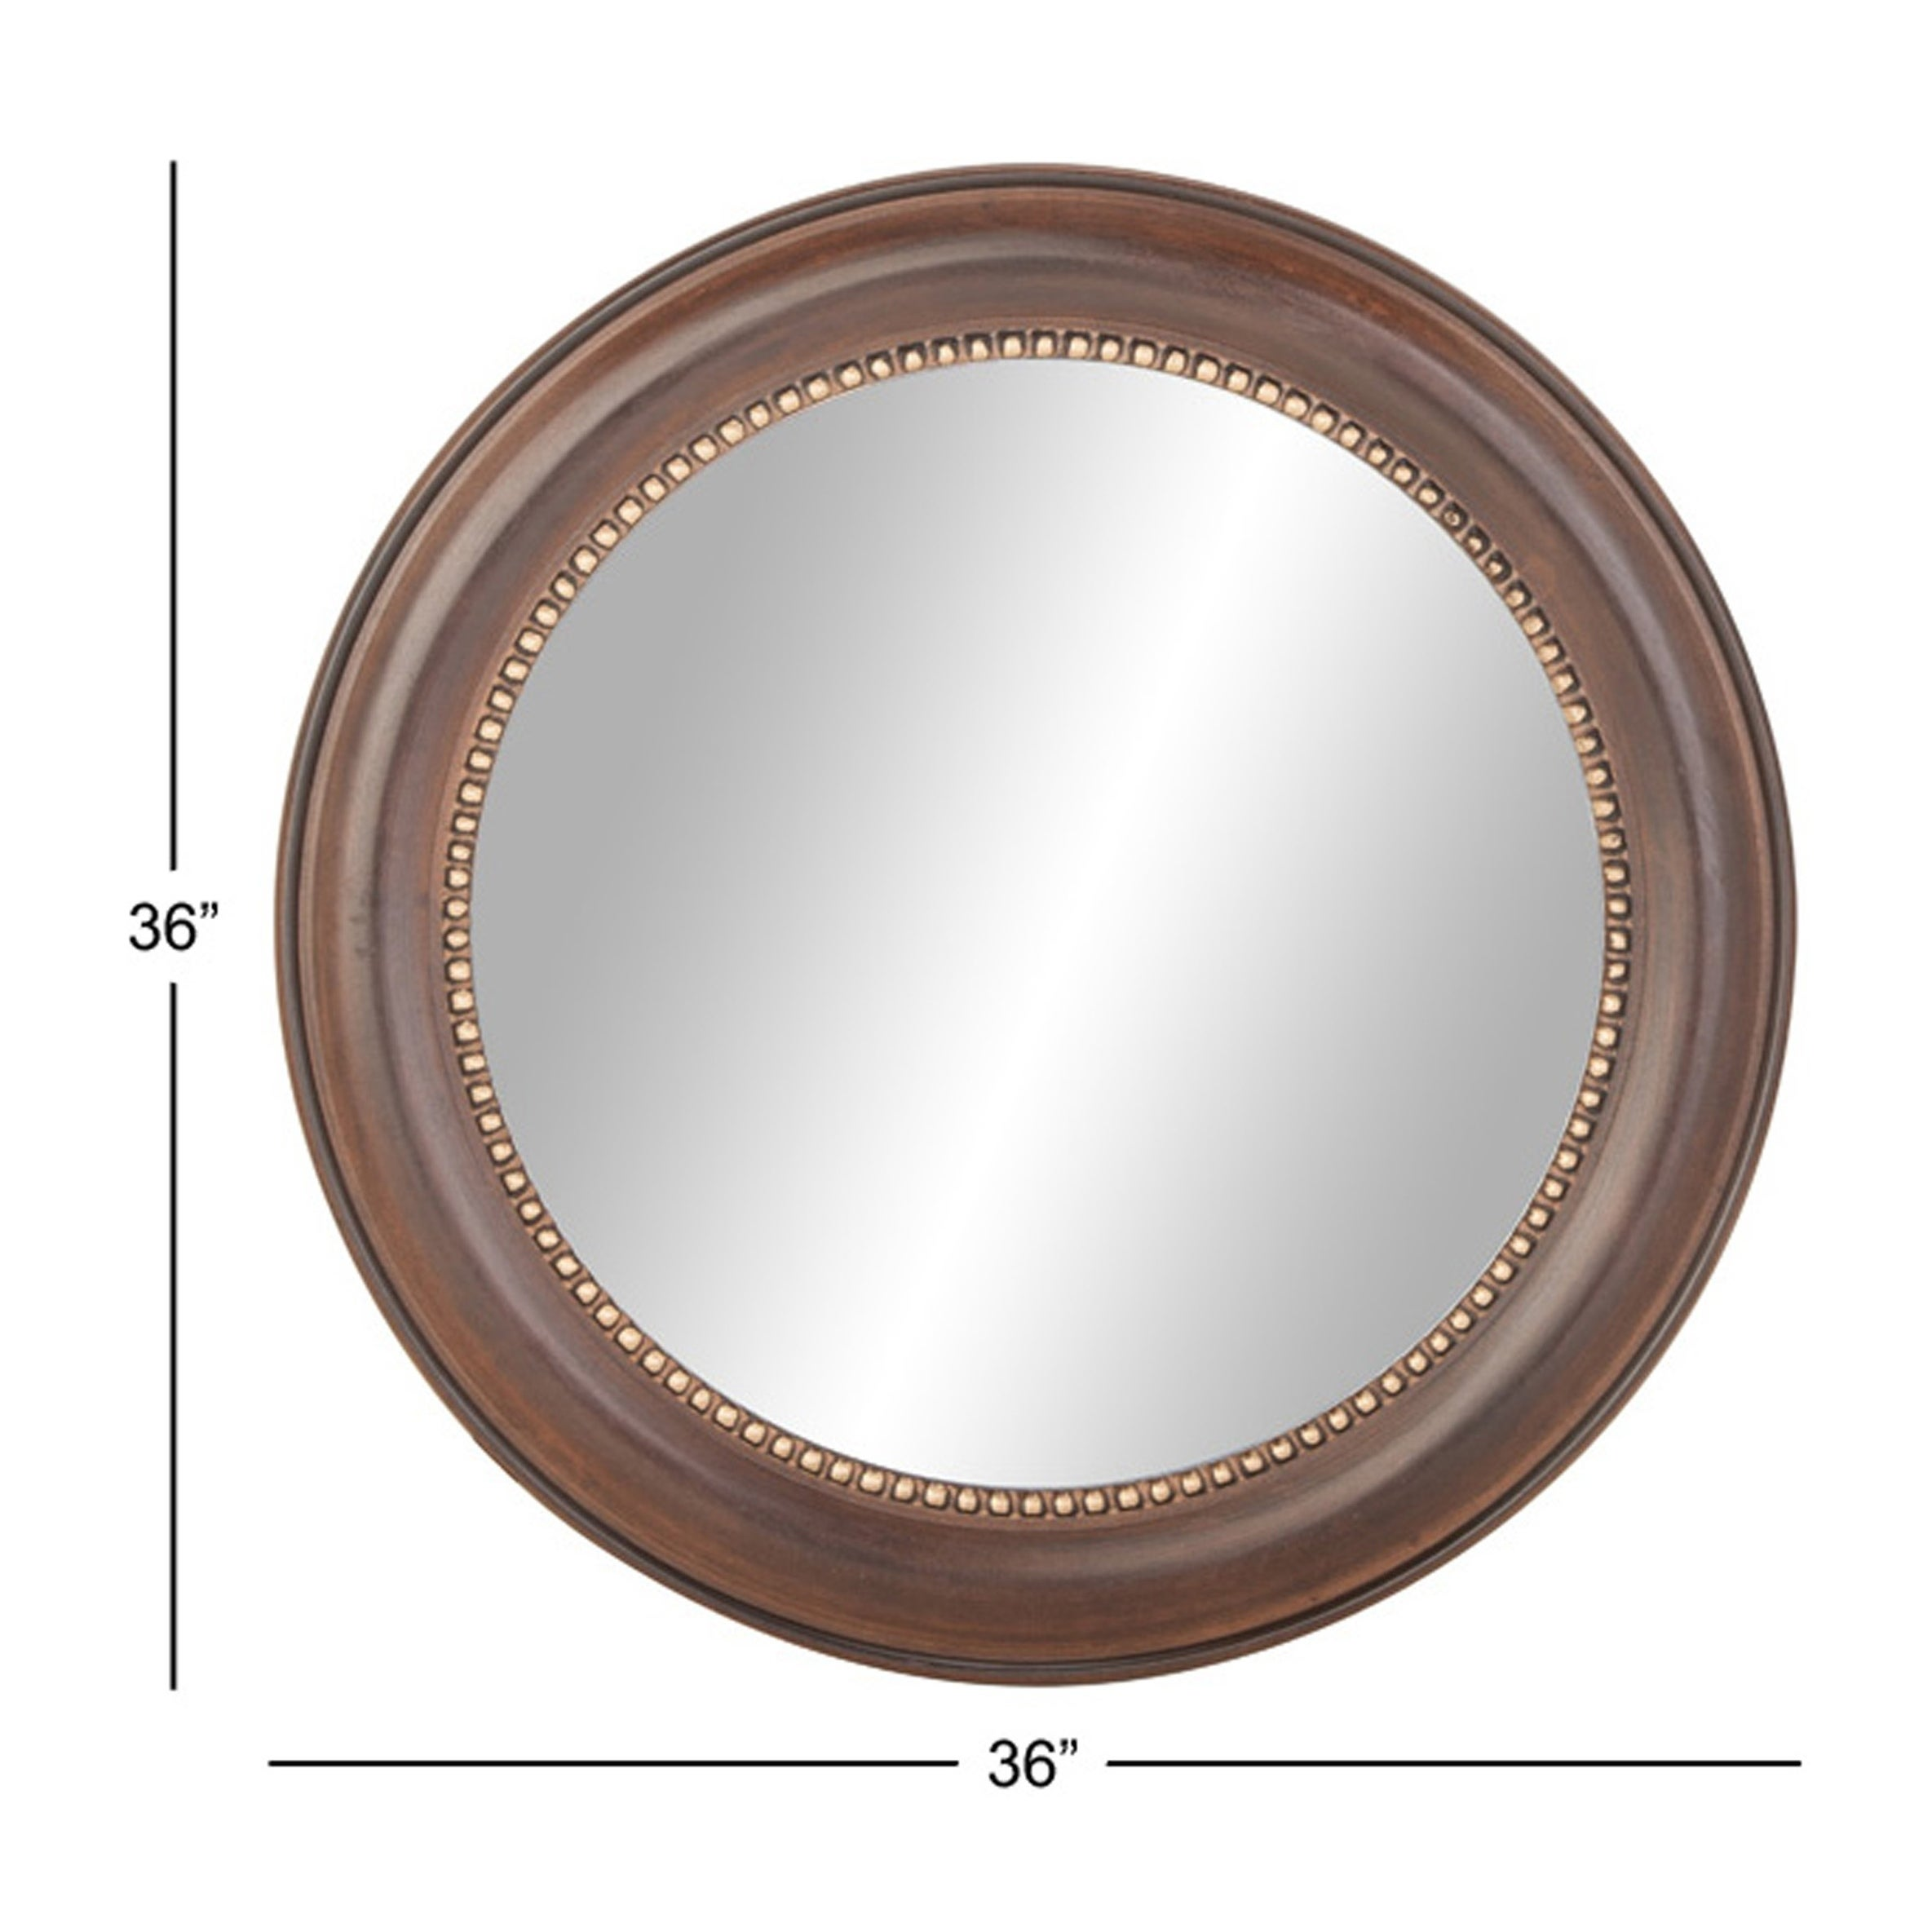 Shop Industrial Brown Wooden Round Mirror Frame (36 in.) - Free ...